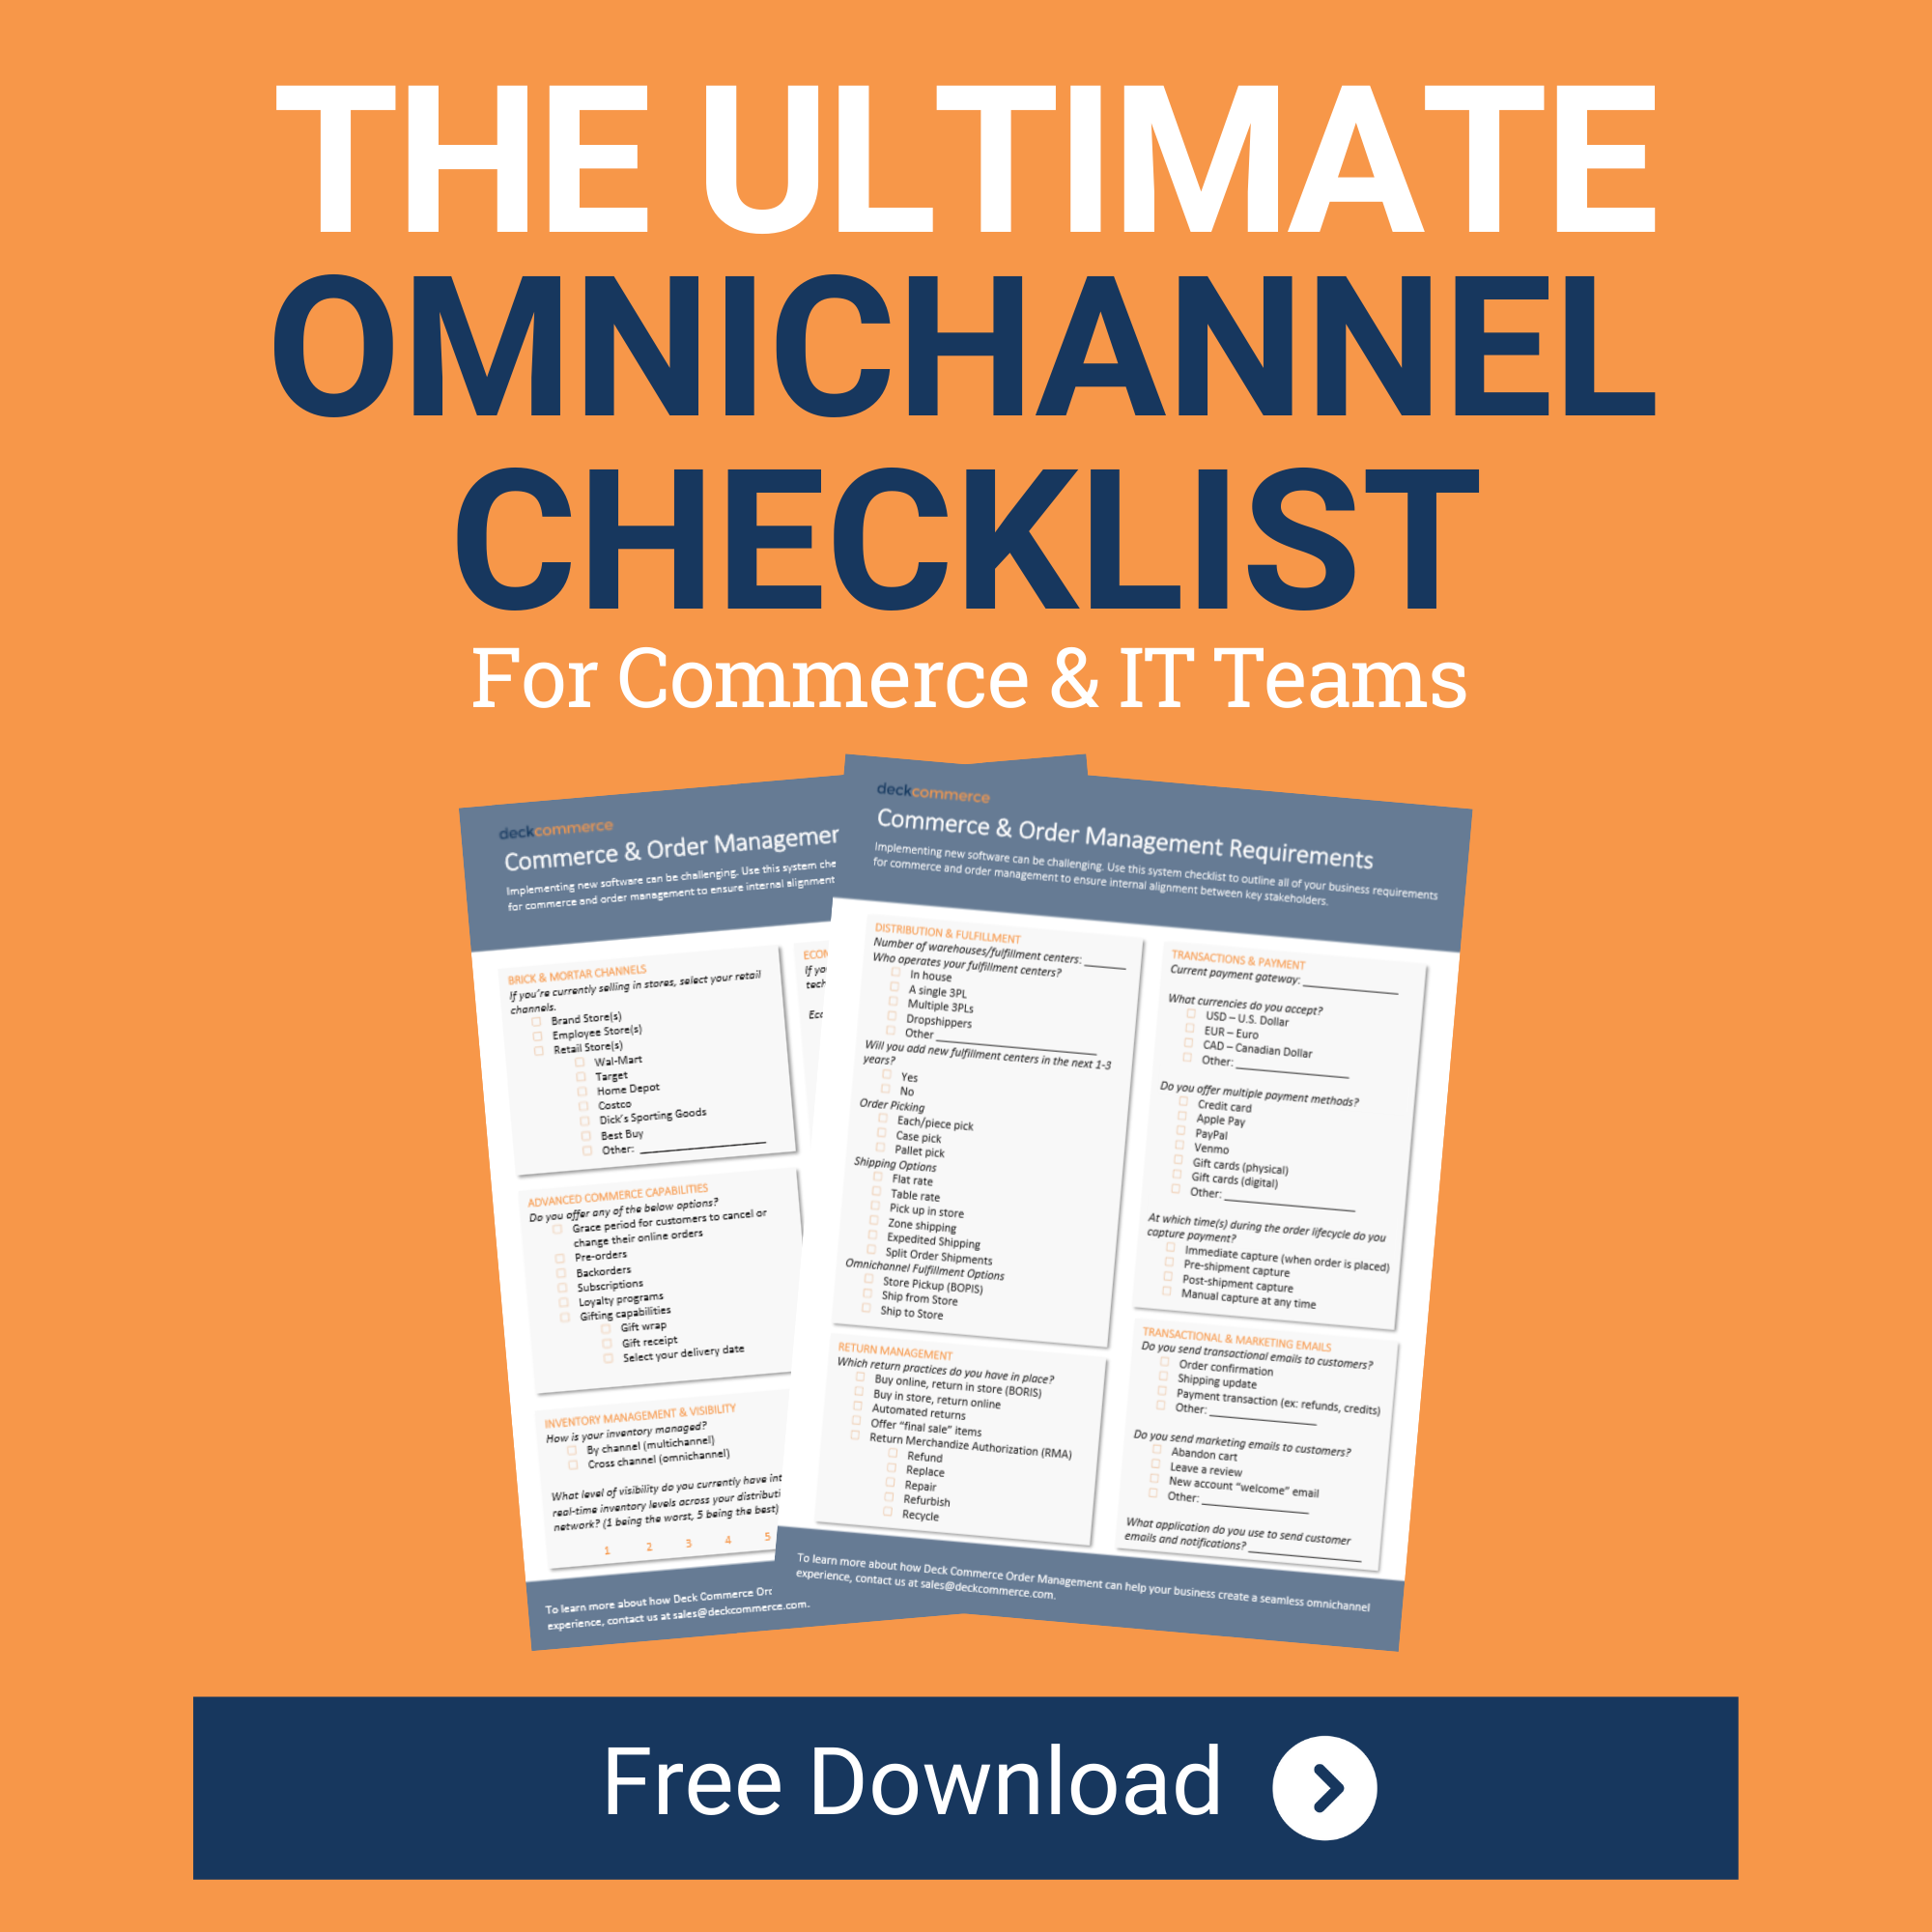 omnichannel checklist for commerce and it teams